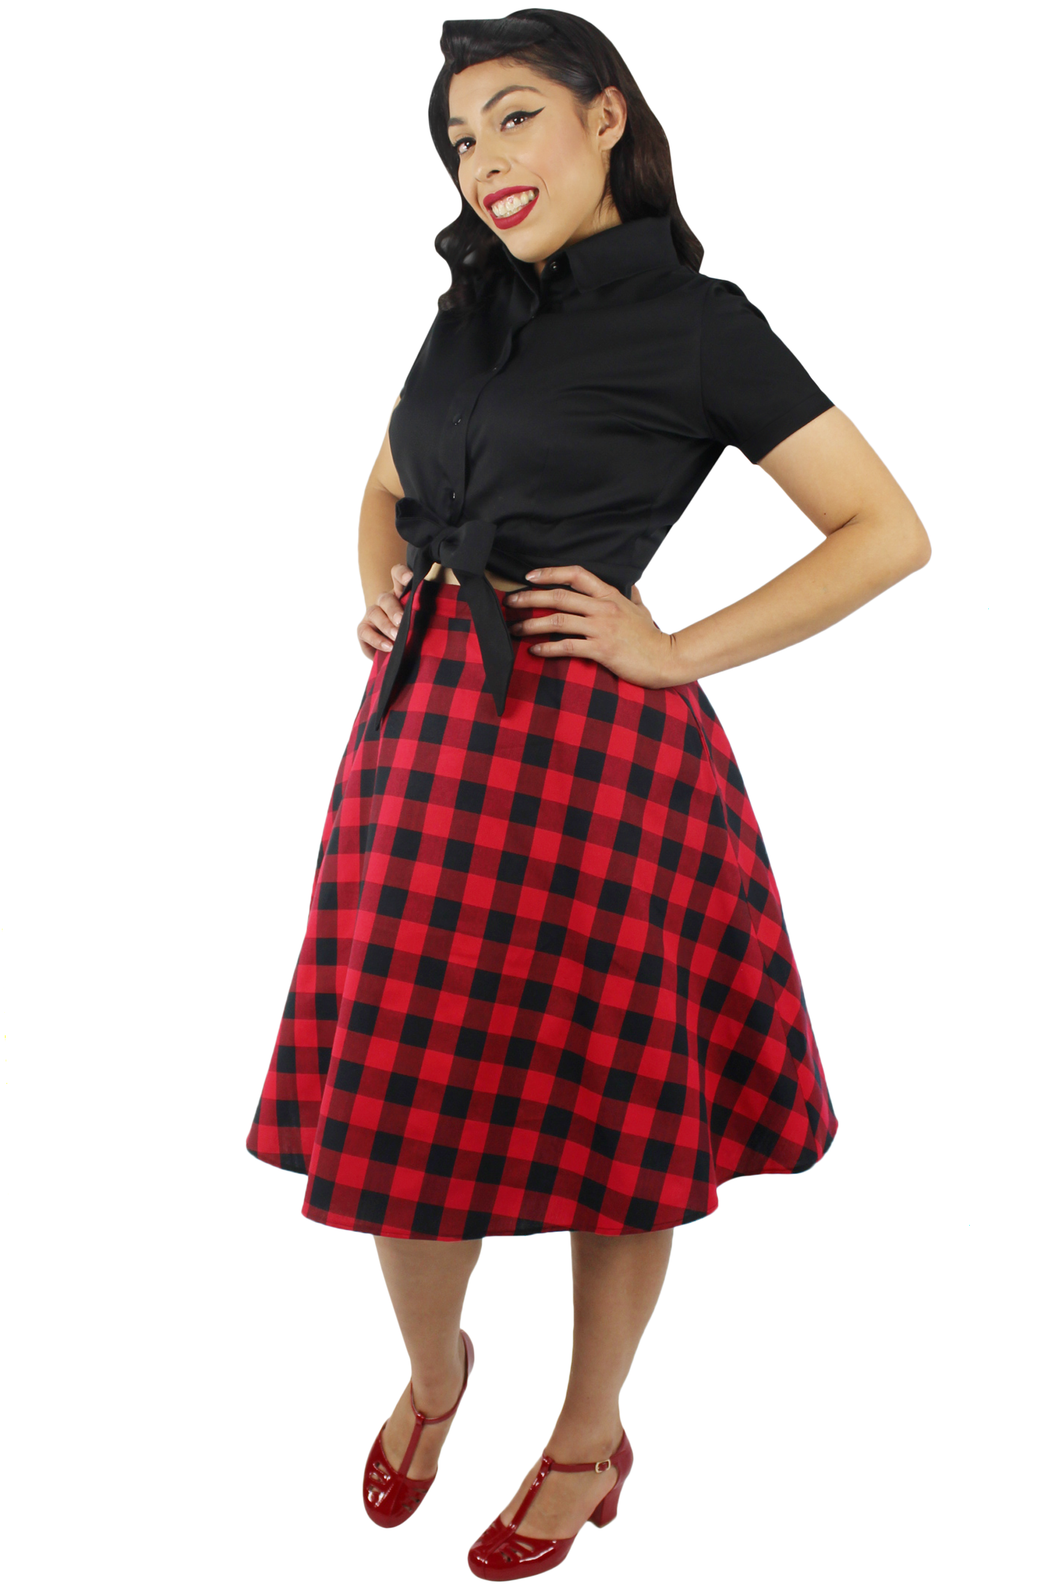 Model wearing black knot top with plaid red and black circle skirt, Pictured from the side